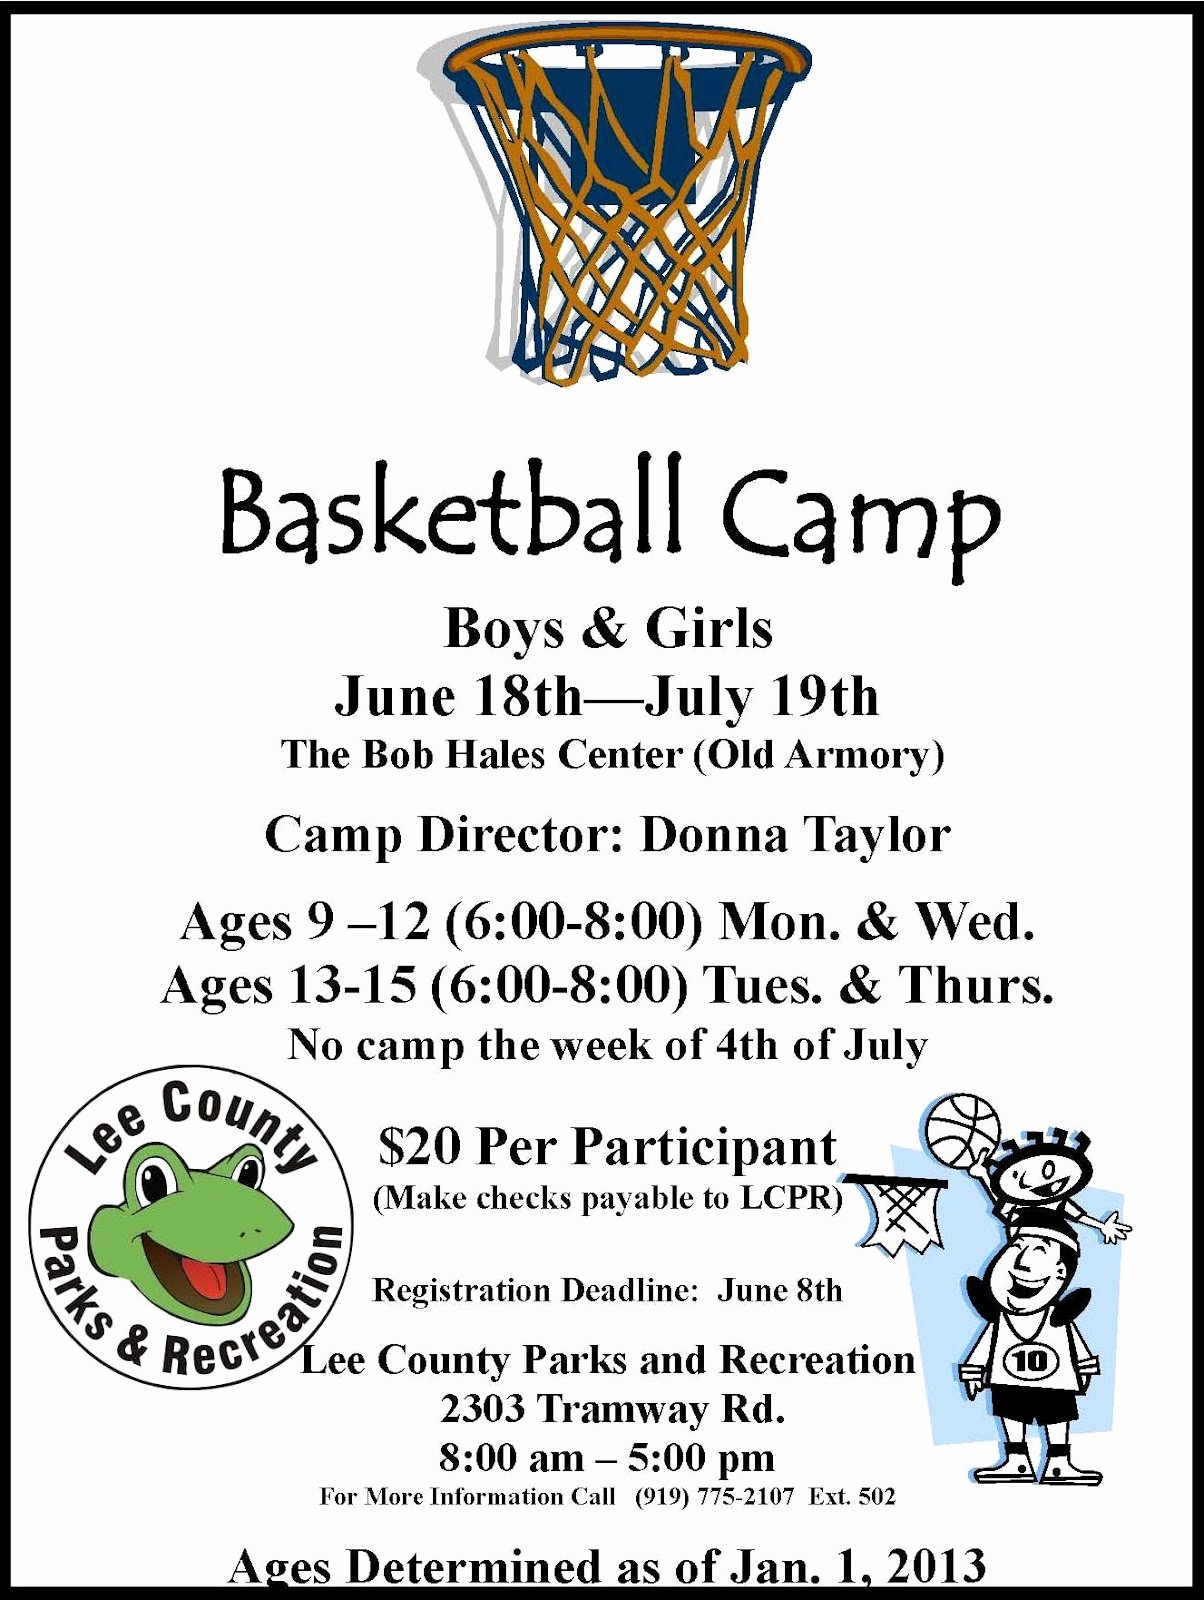 Basketball Camp Flyer Template Lovely Lee County Government Basketball Camp